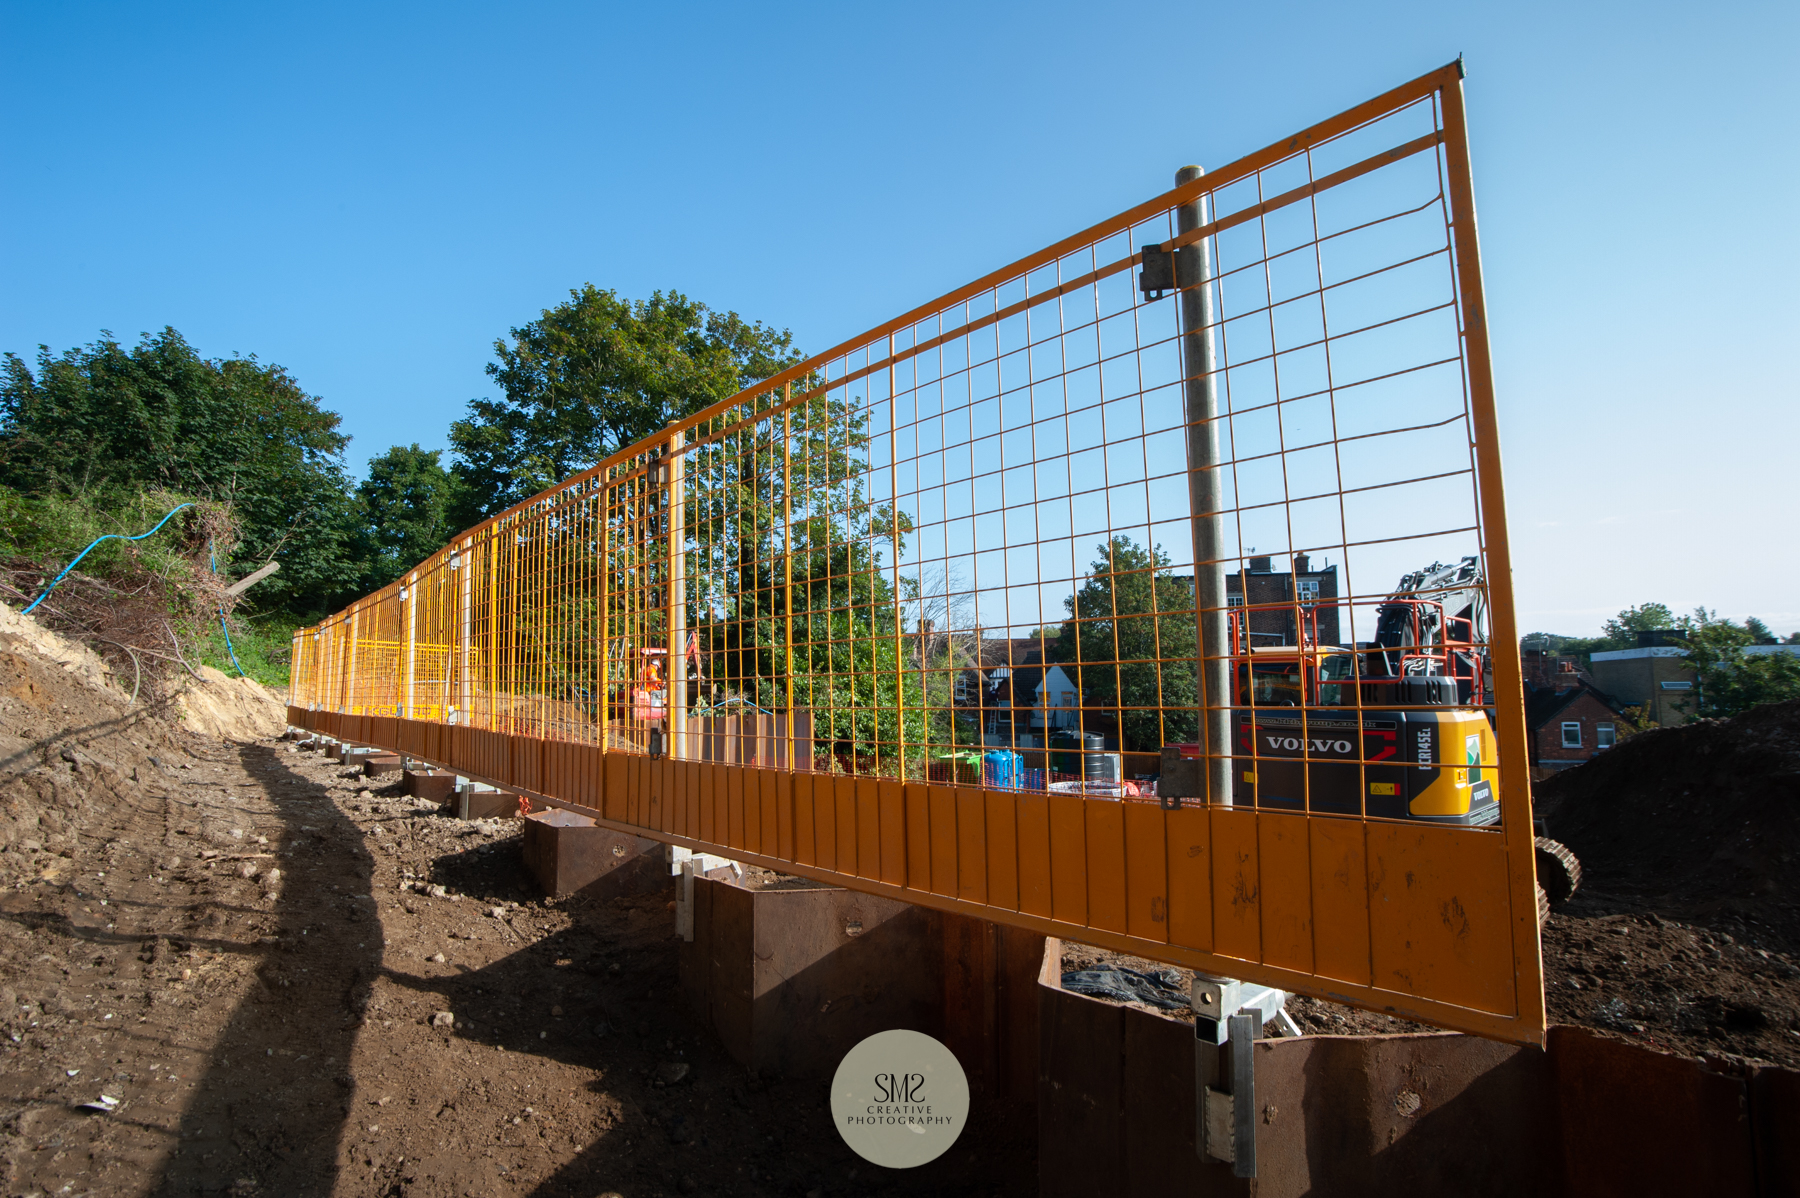 Safety barriers above the sheet piling at the Courtyard Gardens Site, Oxted.